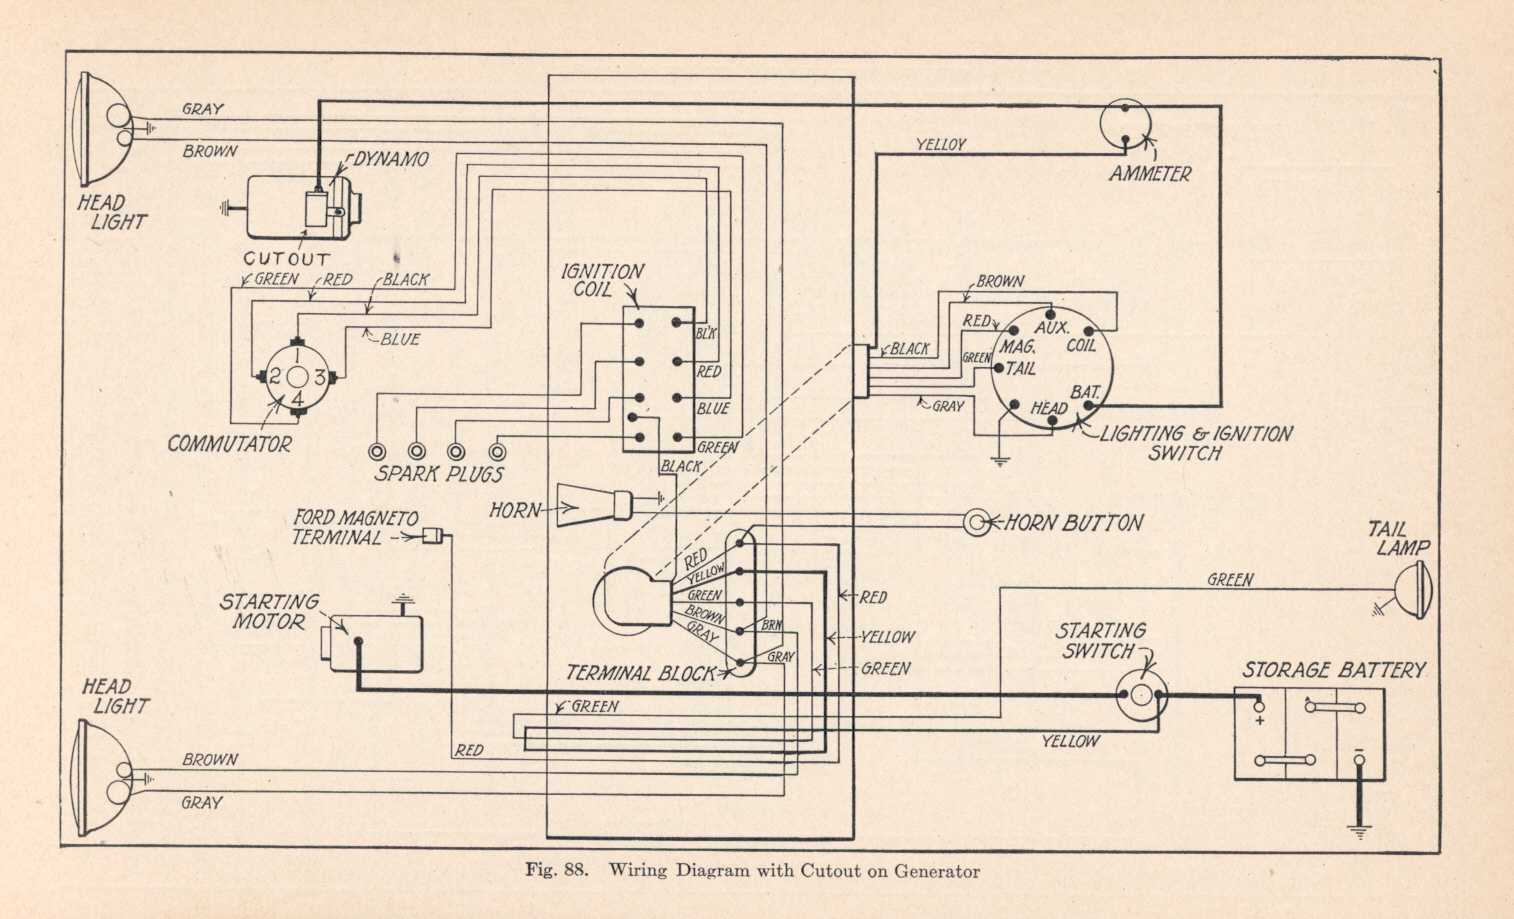 80032 model t ford forum amp meter wiring help needed modem wiring diagram at soozxer.org